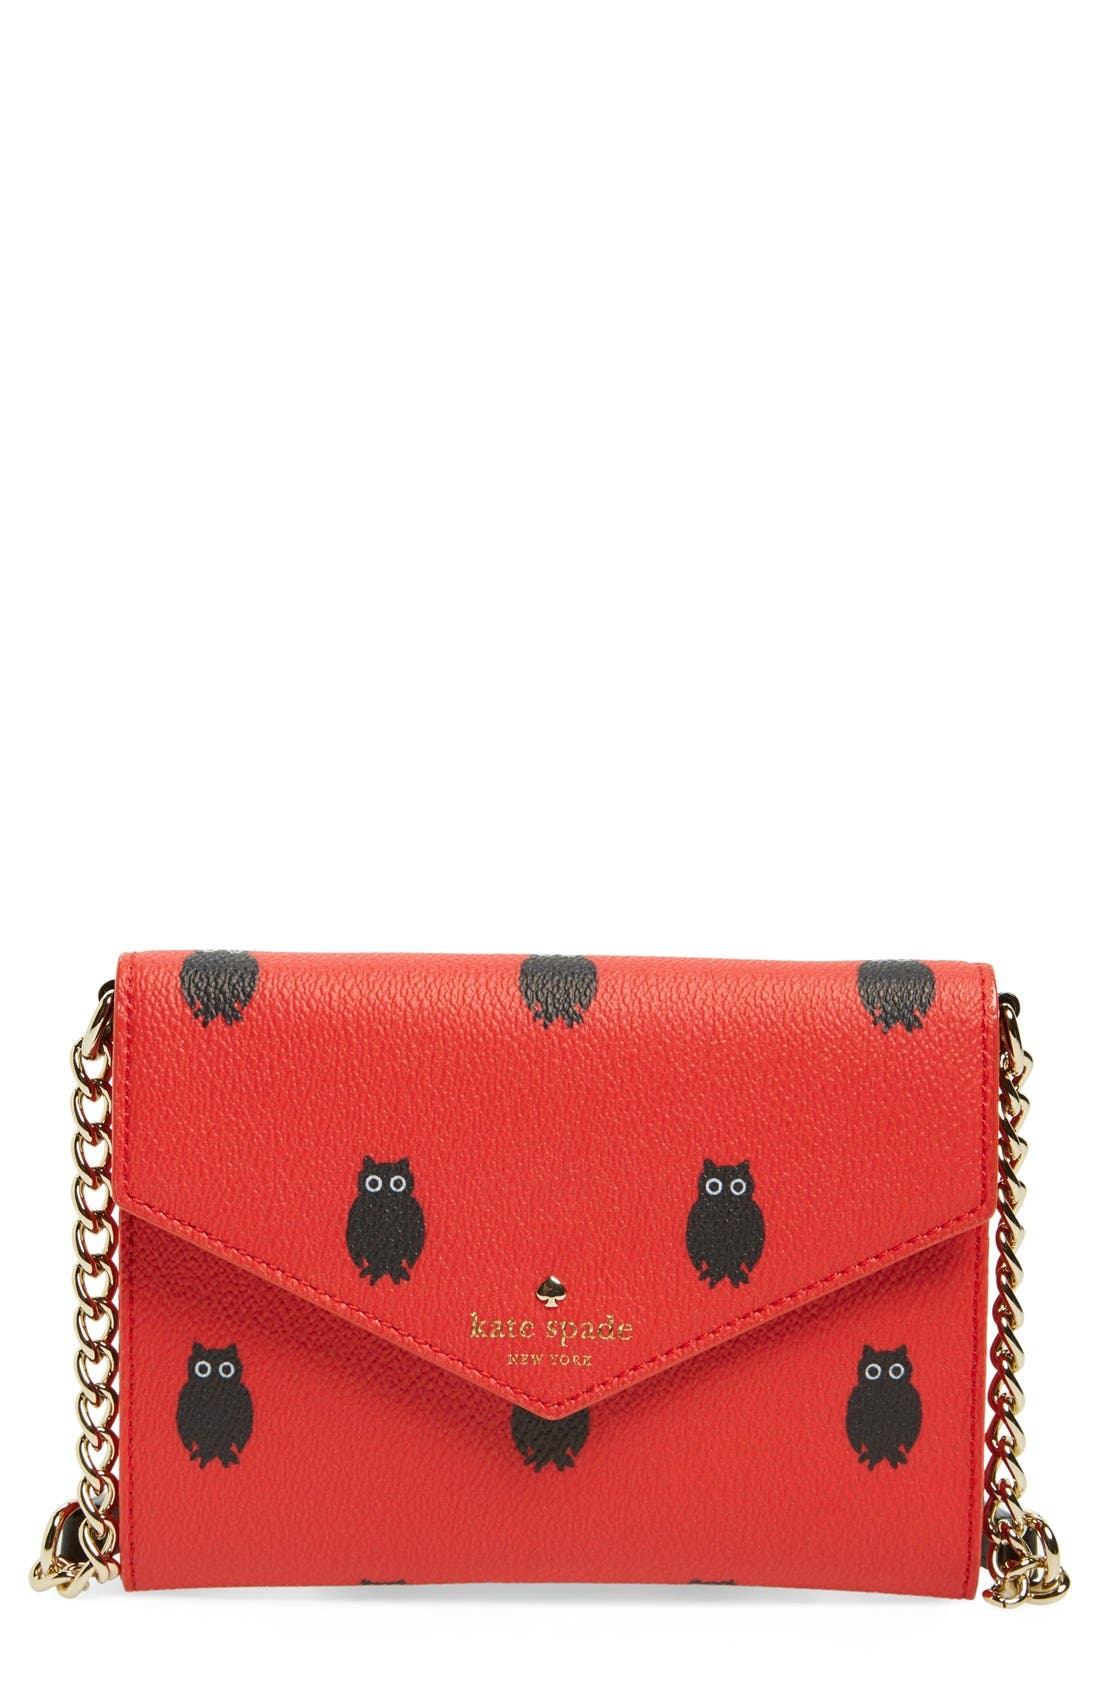 Alternate Image 1 Selected - kate spade new york 'hawthorne lane owls monday' crossbody clutch (Nordstrom Exclusive)